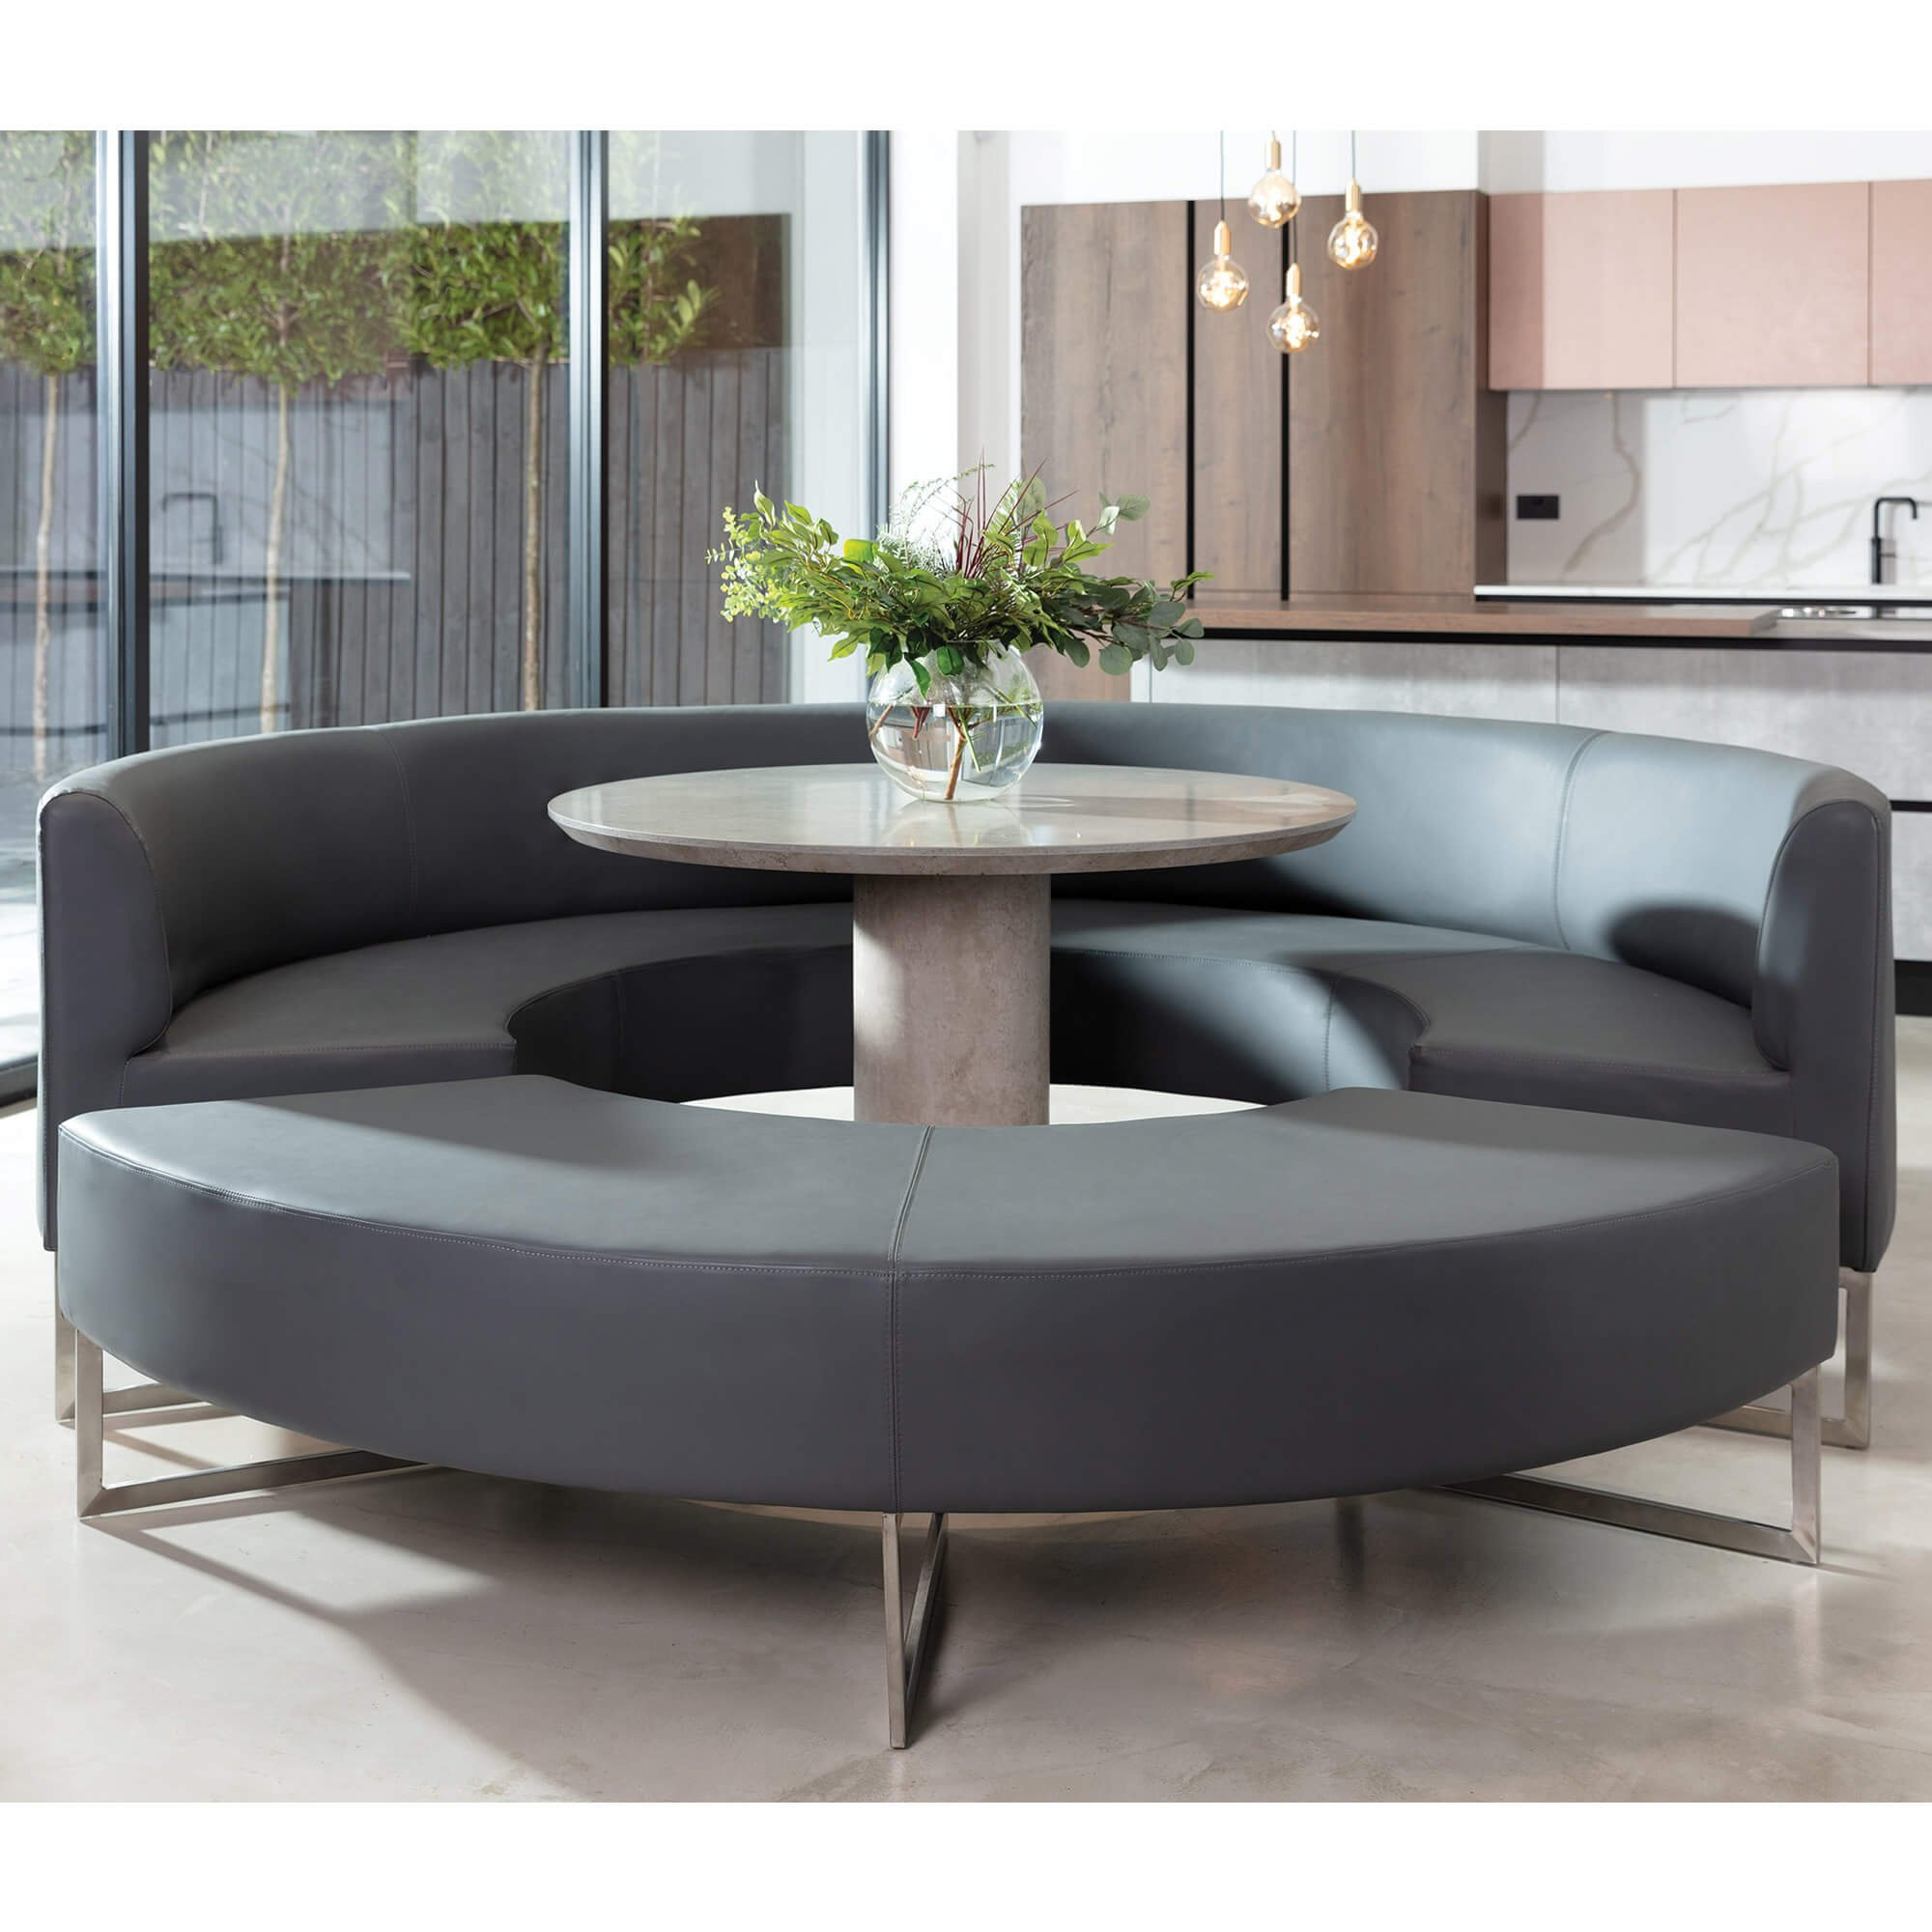 Zurich Grey Faux Leather Round Dining Bench, Dining Room Table With Leather Bench